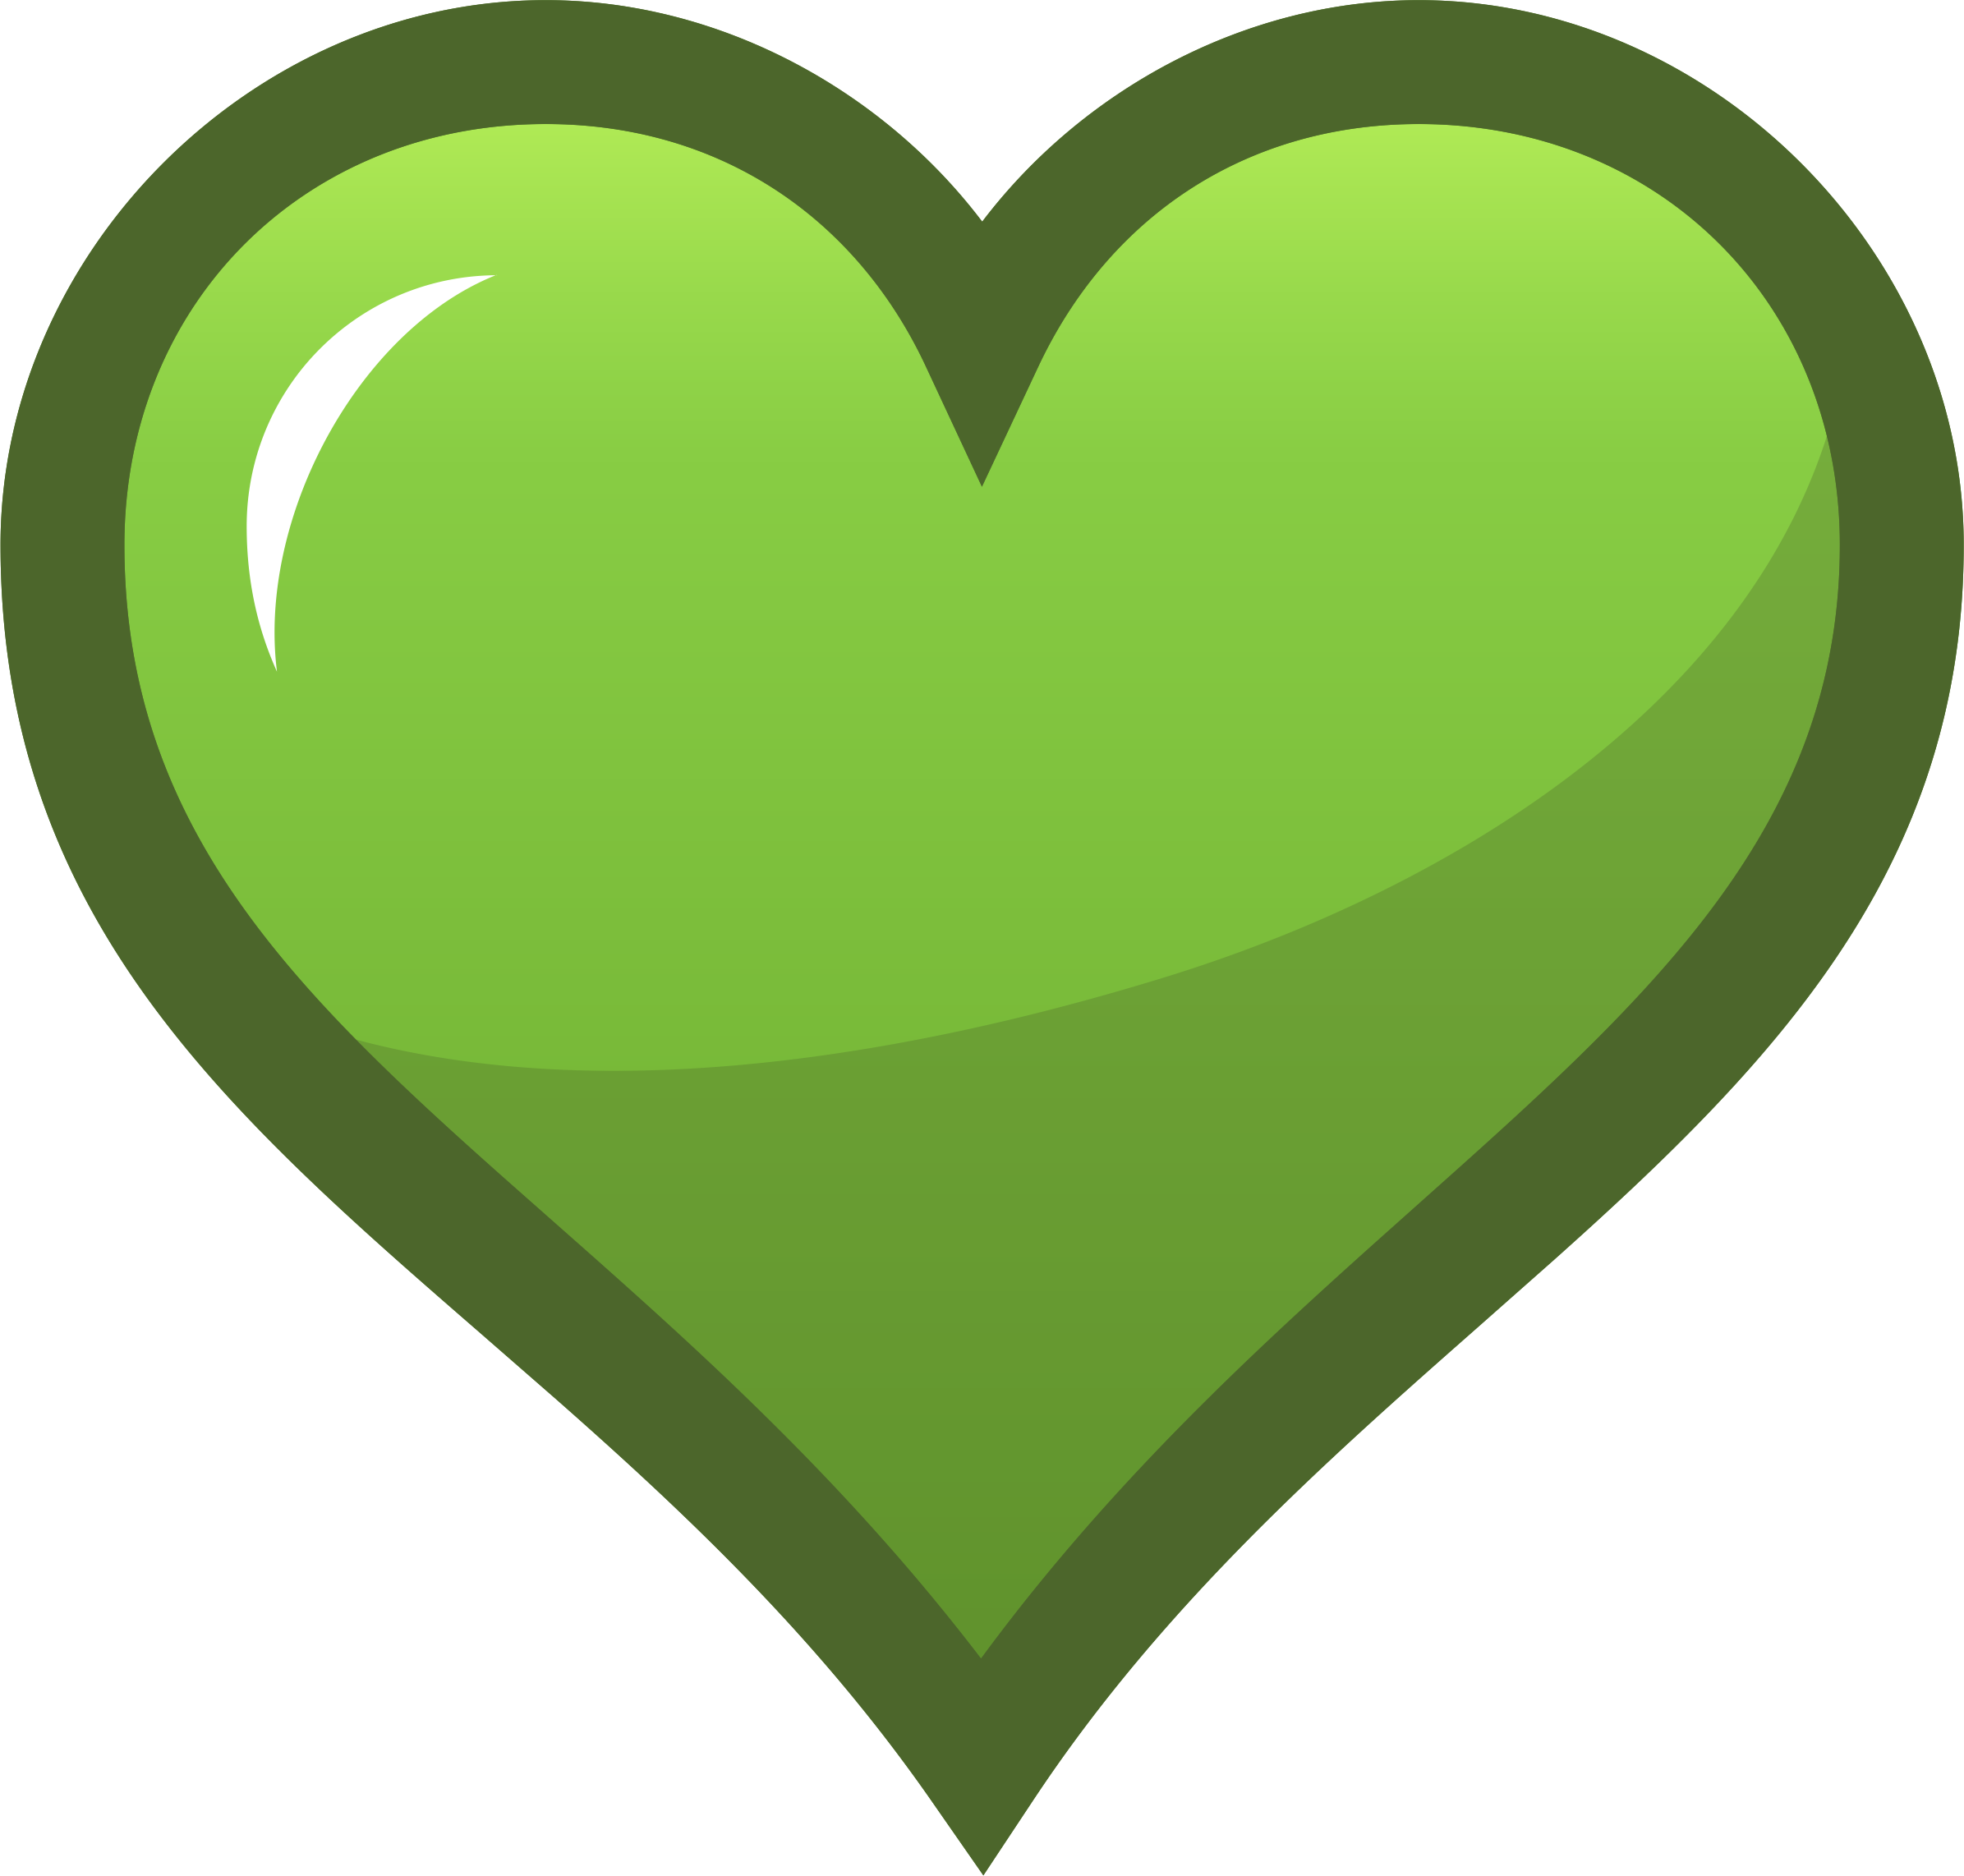 Heart icon clipart graphic transparent download Clipart - Green Heart Icon graphic transparent download